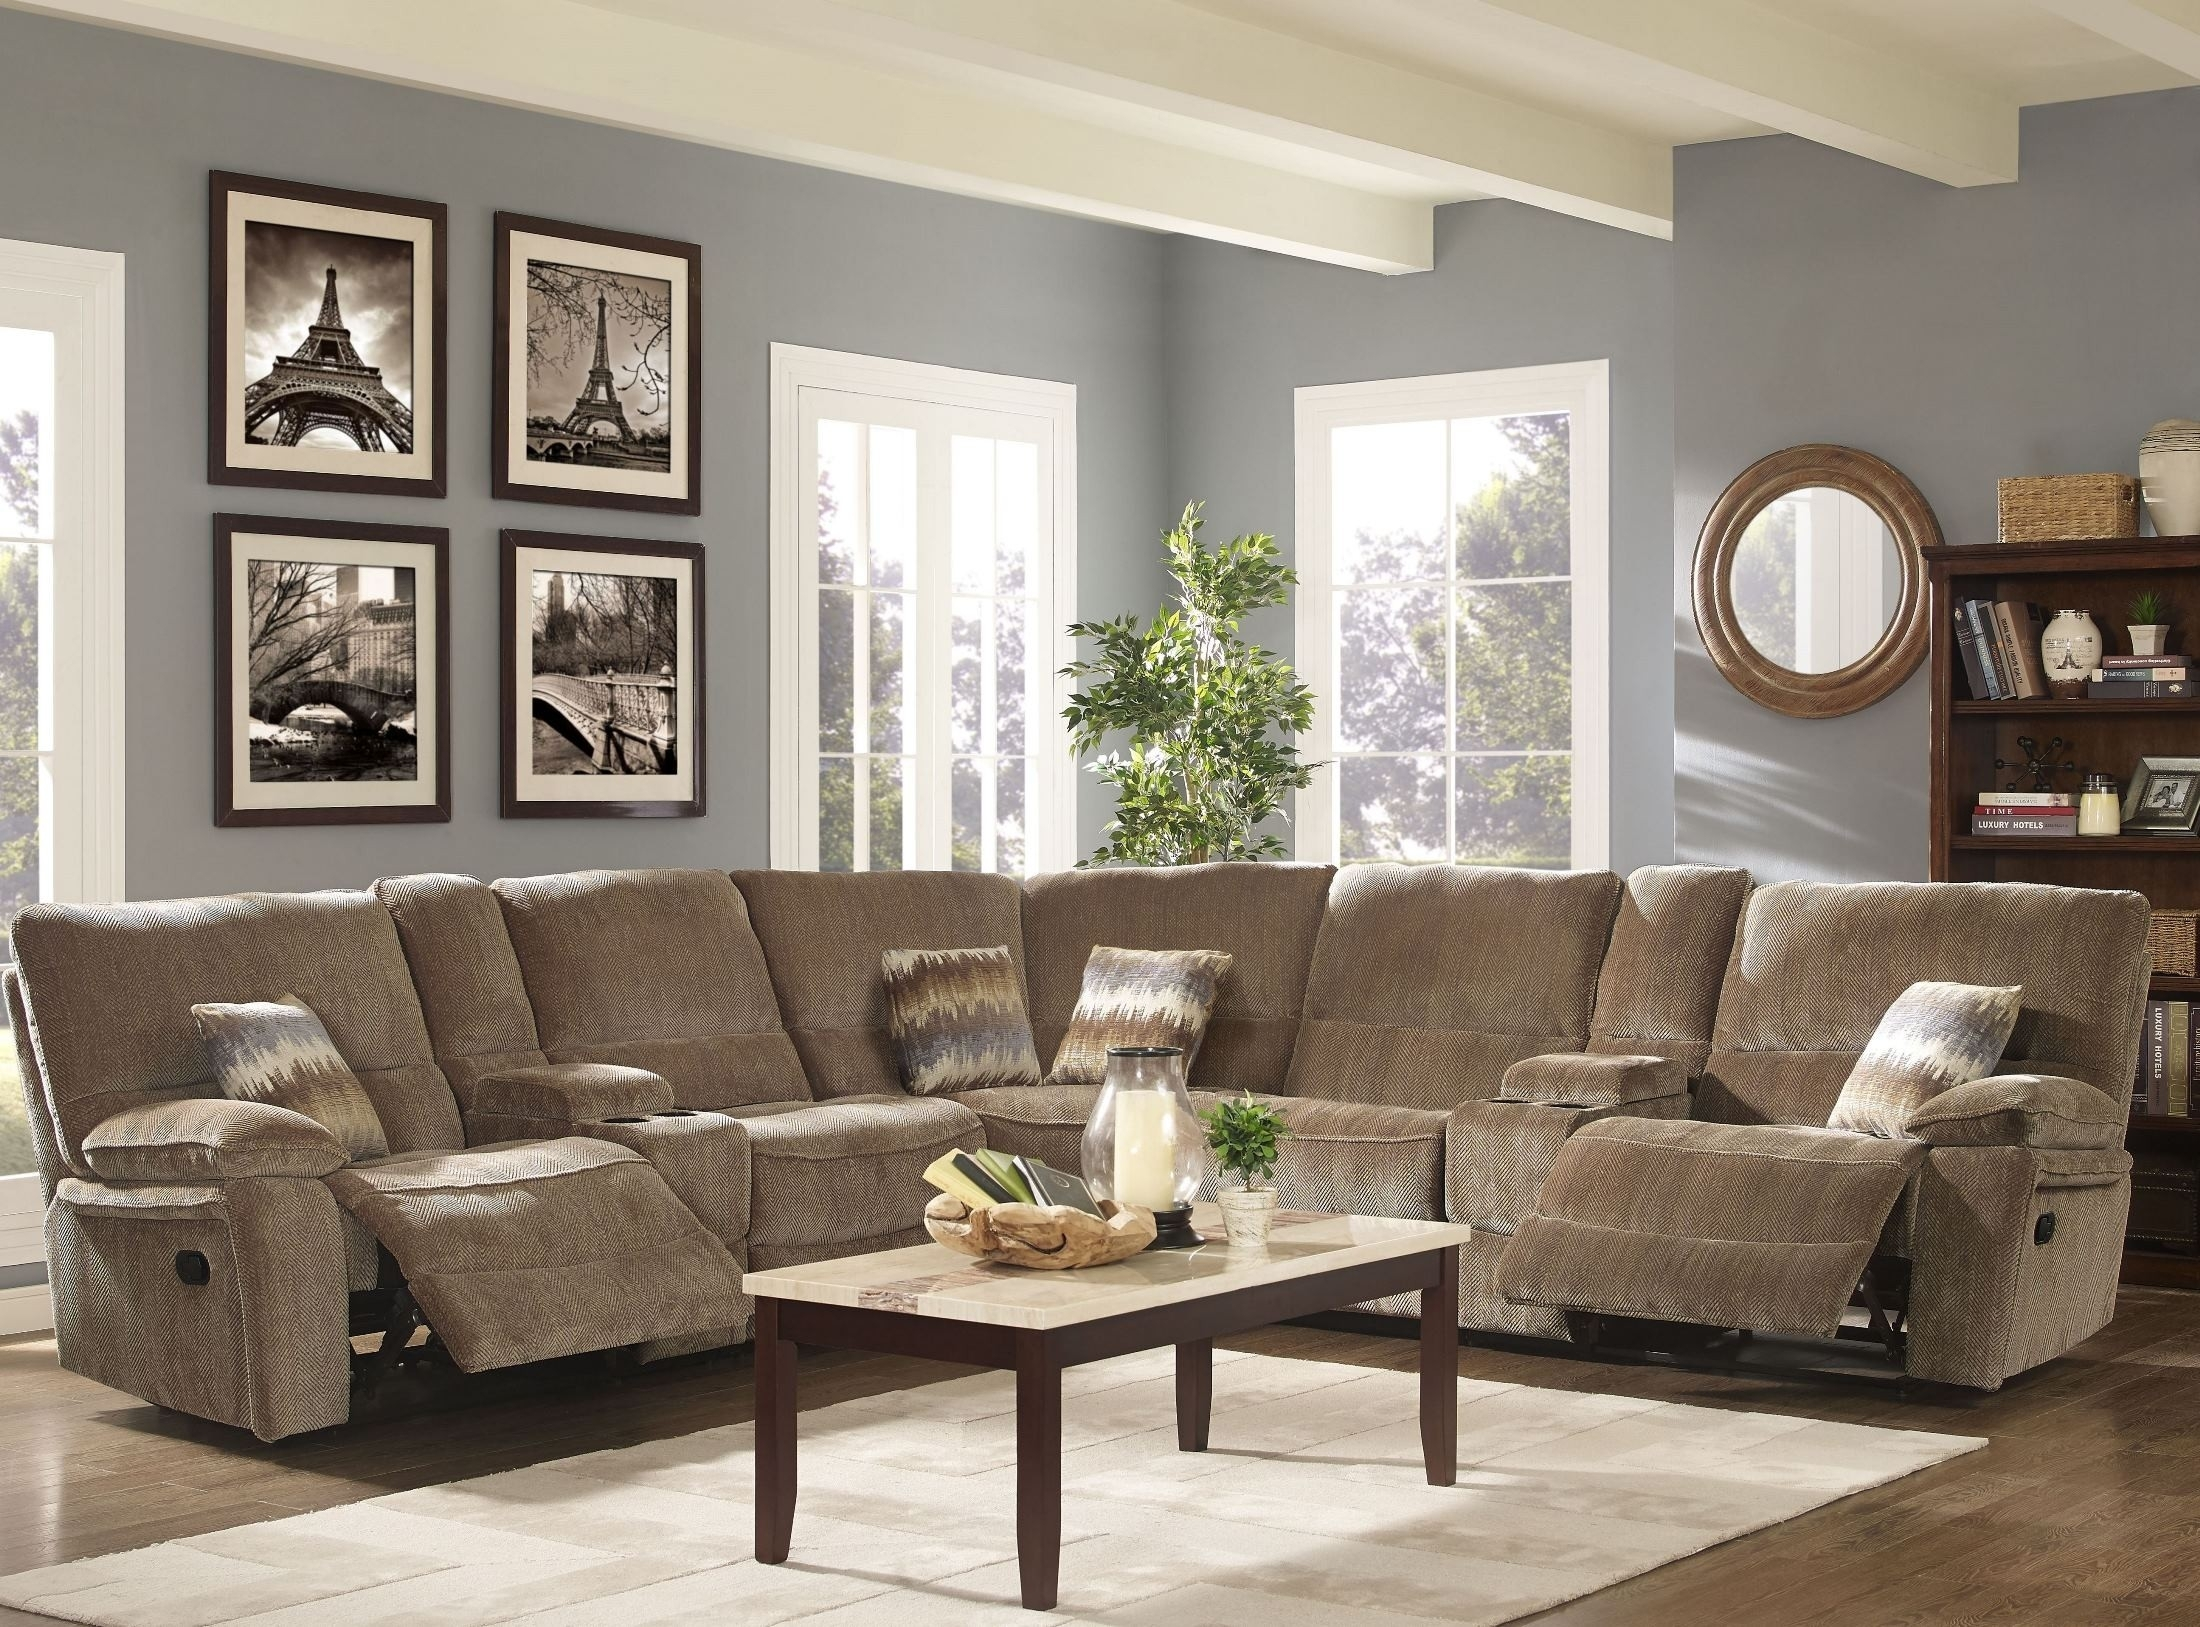 Ranger Bravo Sandalwood Power Reclining Sectional From New Classic Inside Turdur 3 Piece Sectionals With Laf Loveseat (View 21 of 25)